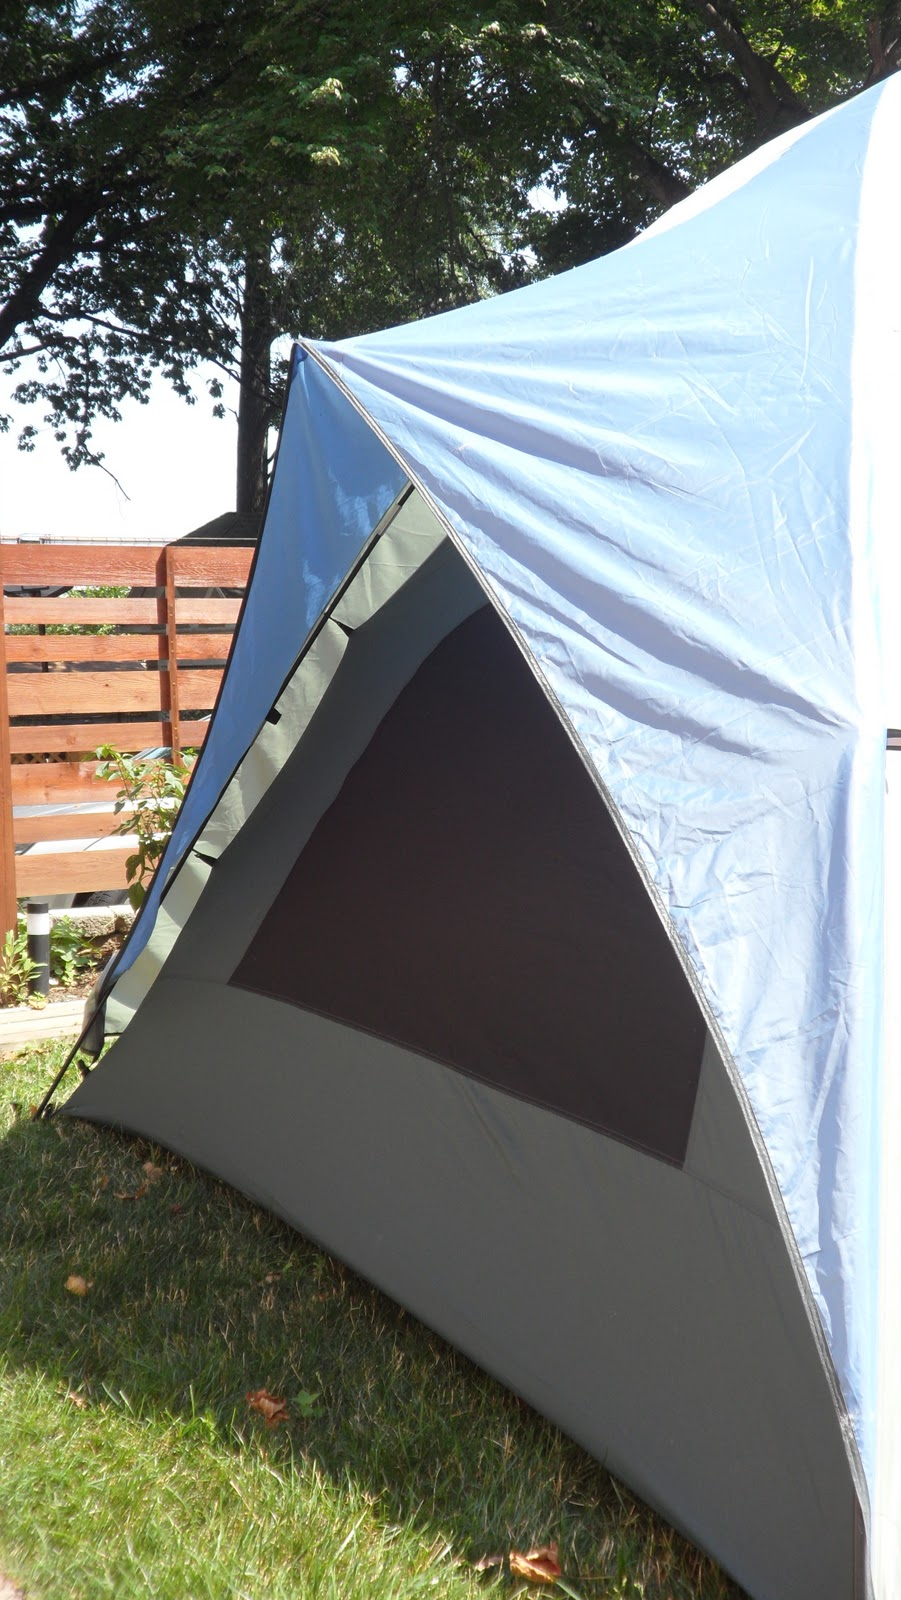 for sale > sporting goods - by owner. post; account; print. favorite this post L.L. Bean Microlight FS2 tent - $ hide this posting unhide make / manufacturer: LL Bean model name / number: Microlight FS2. QR Code Link to This Post. Lightlyused microlight fs2 tent. 2 person - .